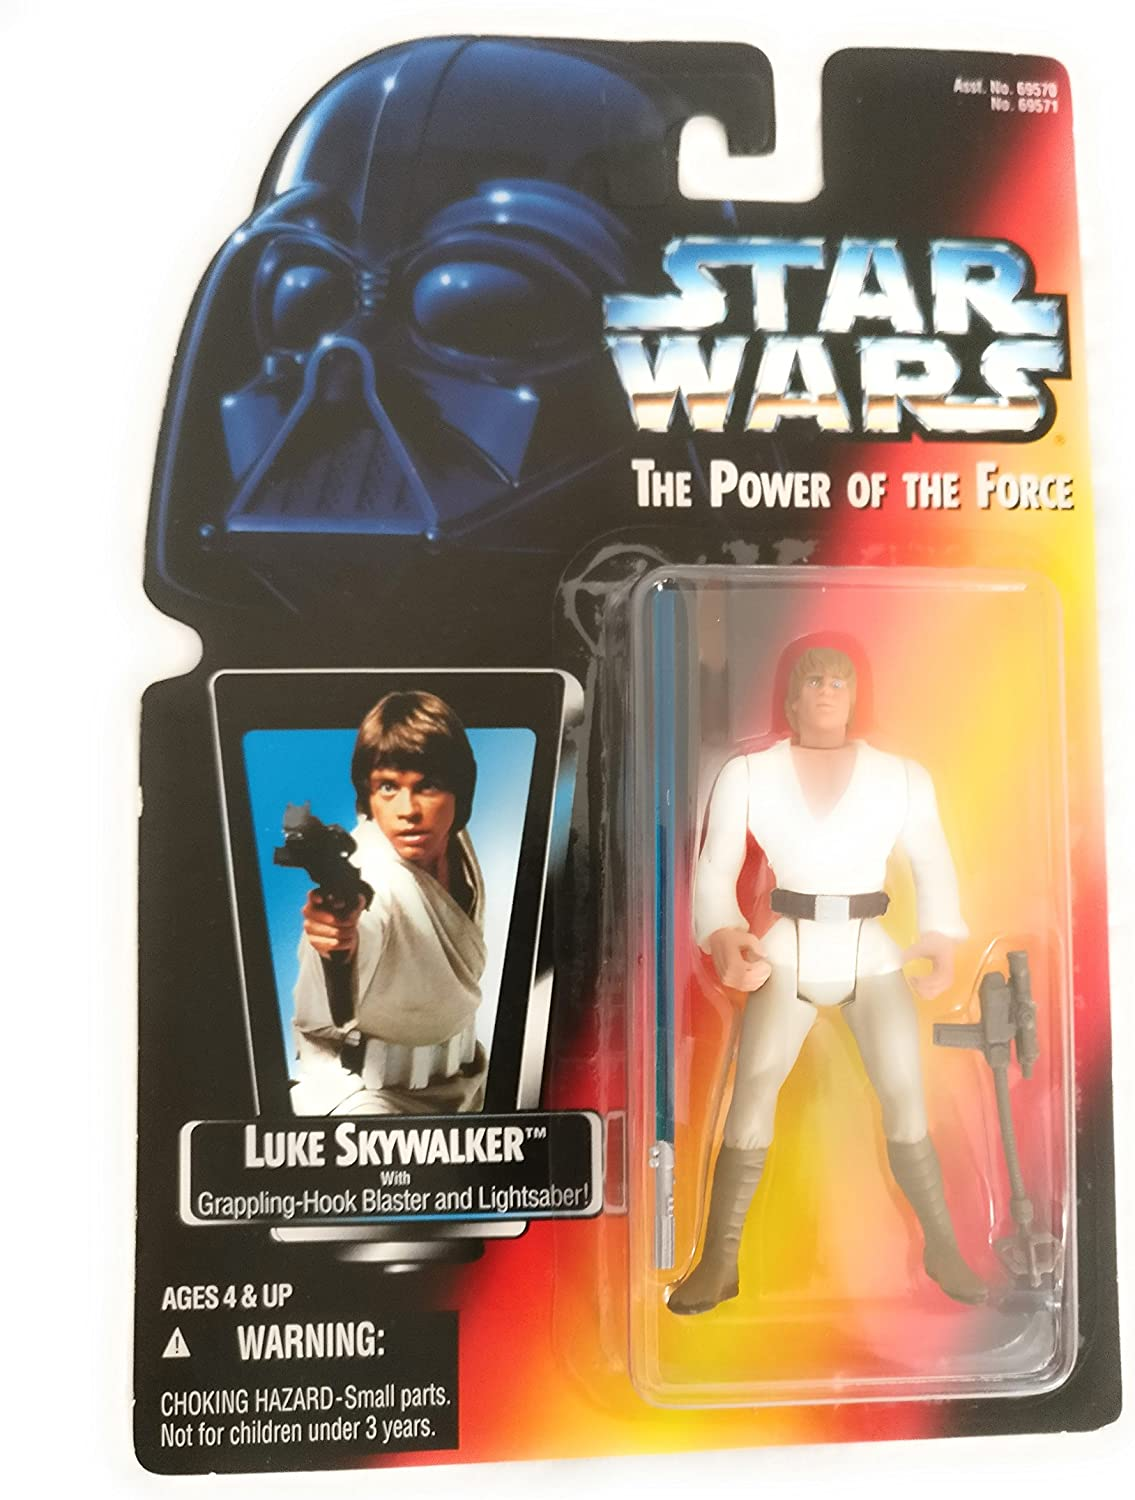 Star Wars Power of the Force Red Card Luke Skywalker in X-Wing Fighter Pilot Gear with Long Lightsaber Action Figure